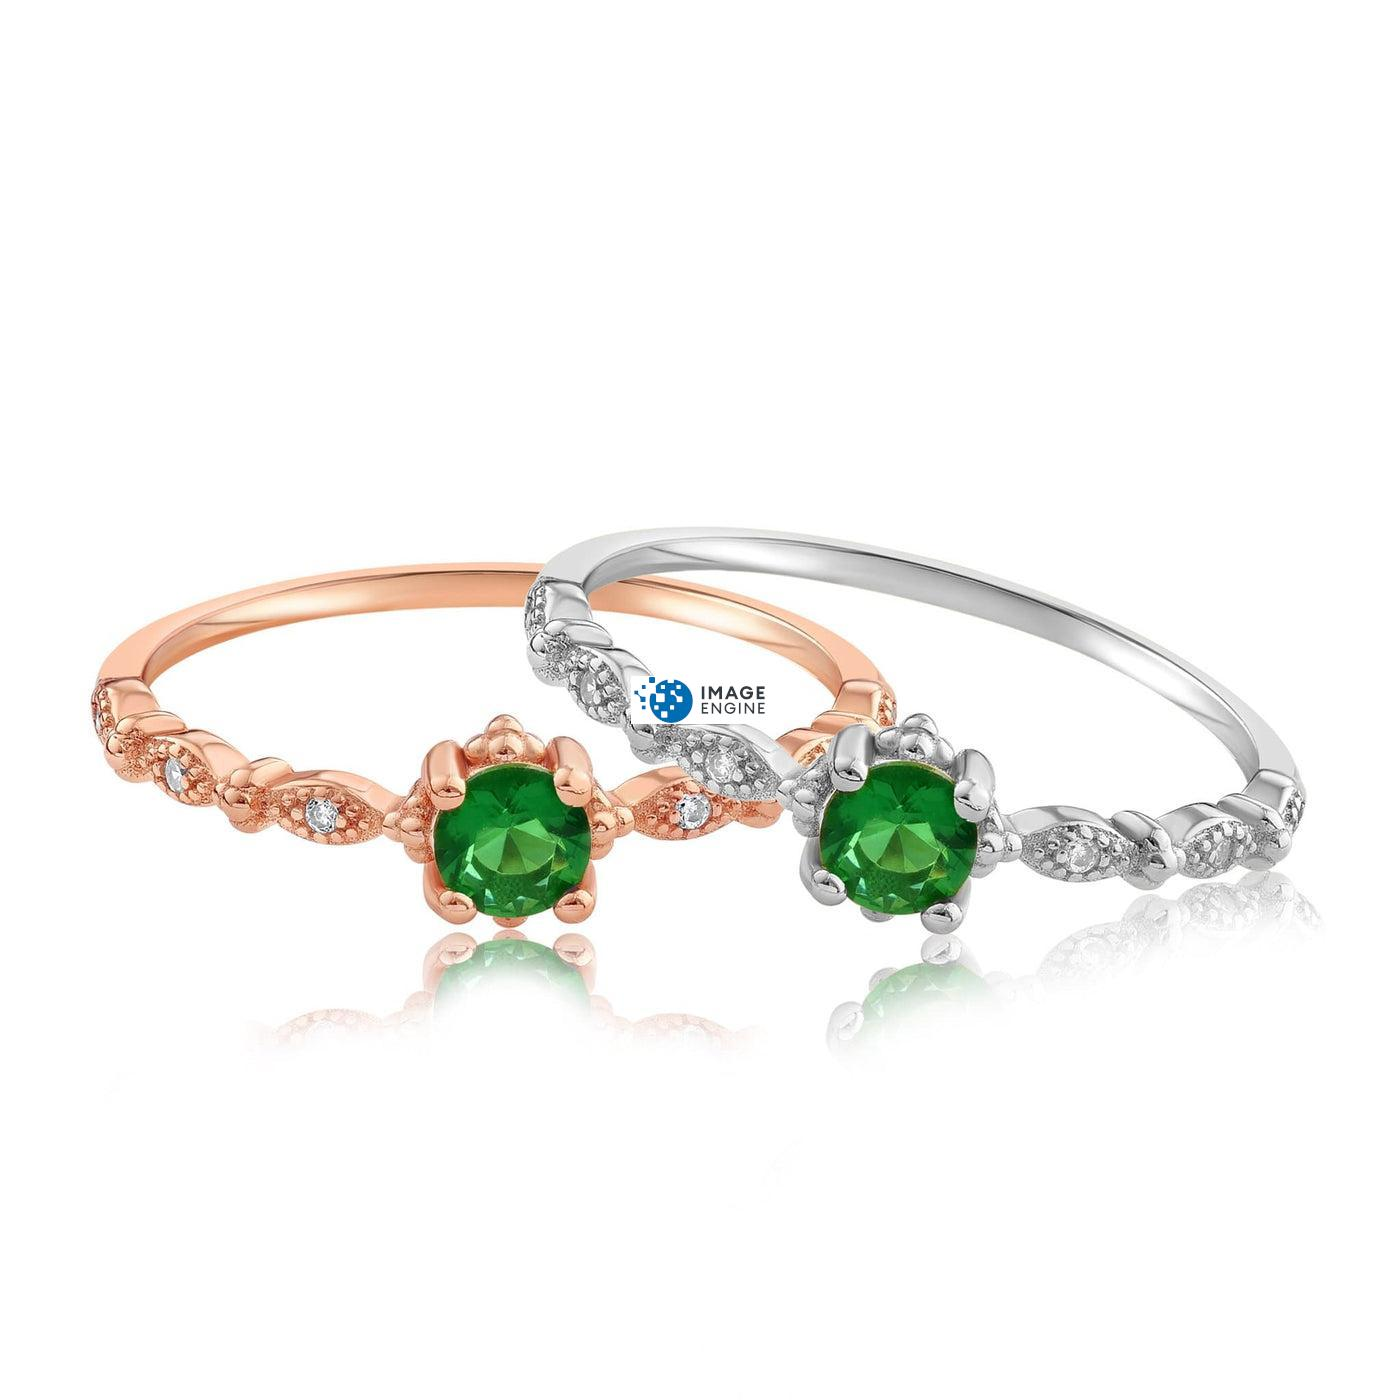 Garen Ring Green Gemstone - Front View Side by Side - 18K Rose Gold Vermeil and 925 Sterling Silver